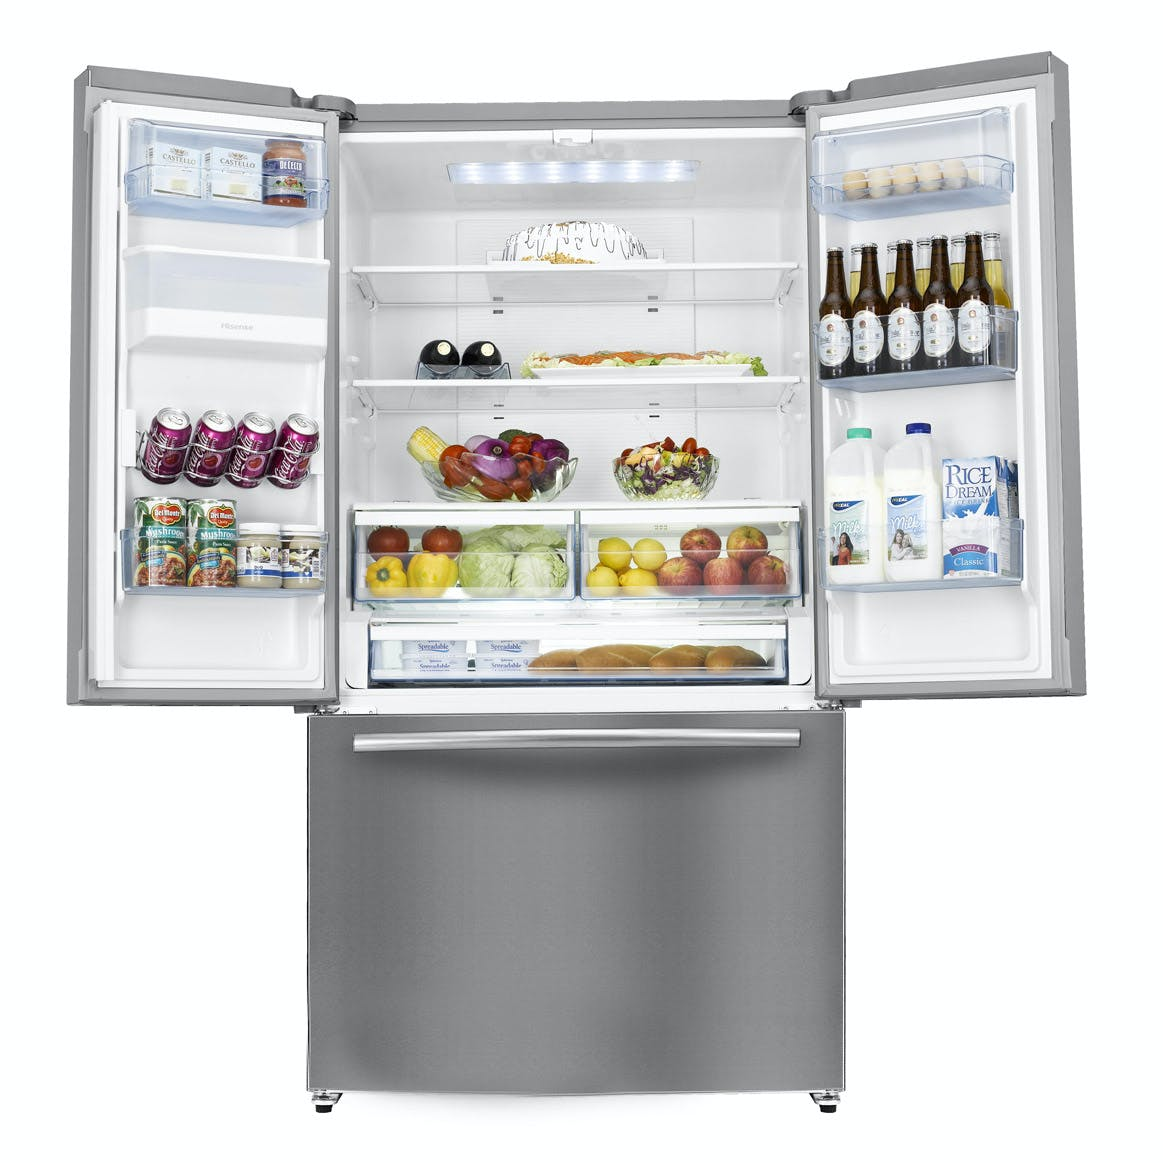 Hisense Rf697n4zs1 American Fridge Freezer With French Doors In Ststeel